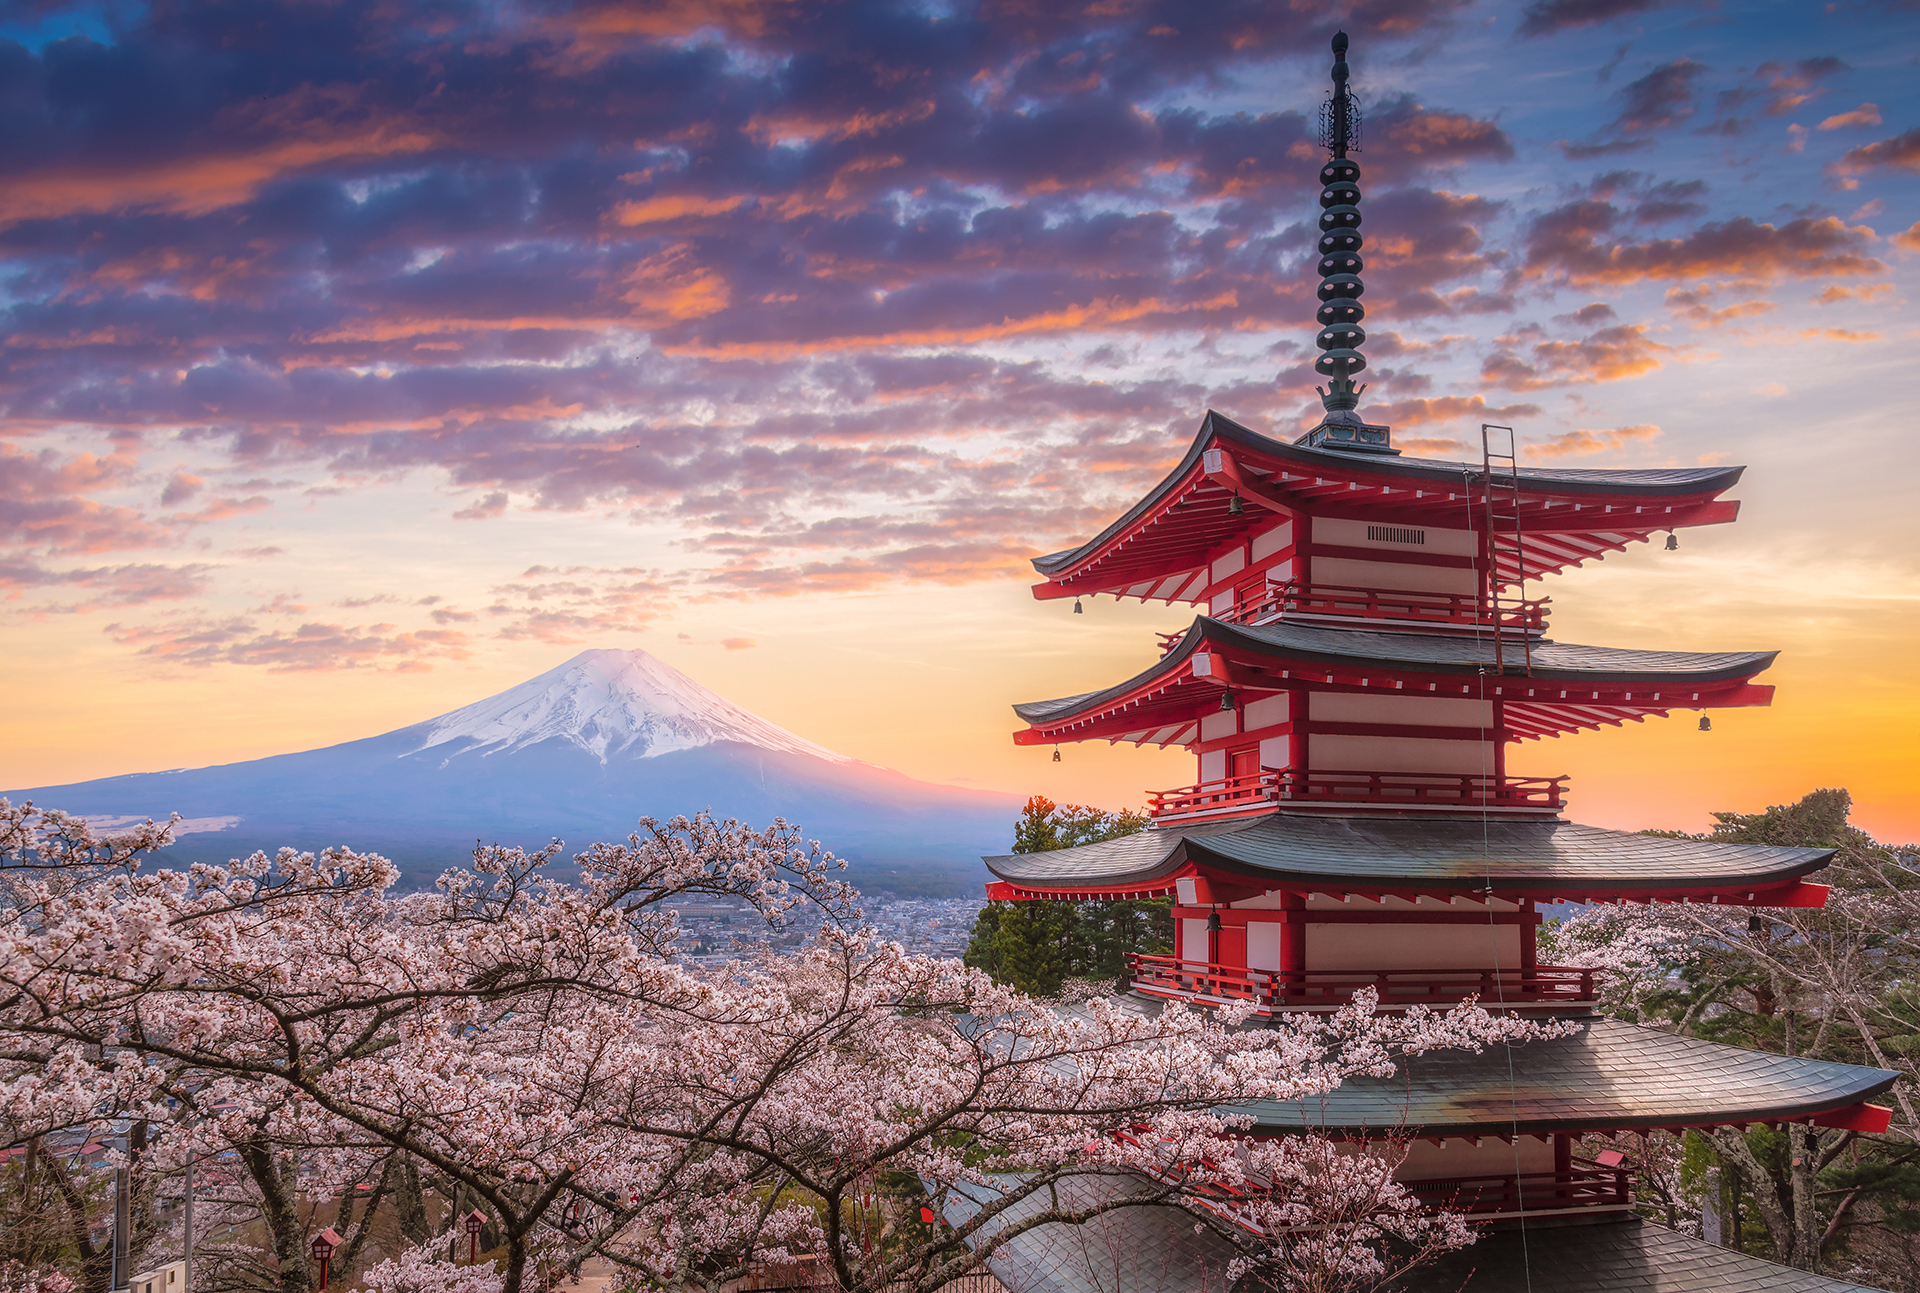 View of Mt. Fuji over cherry trees and Japanese architecture